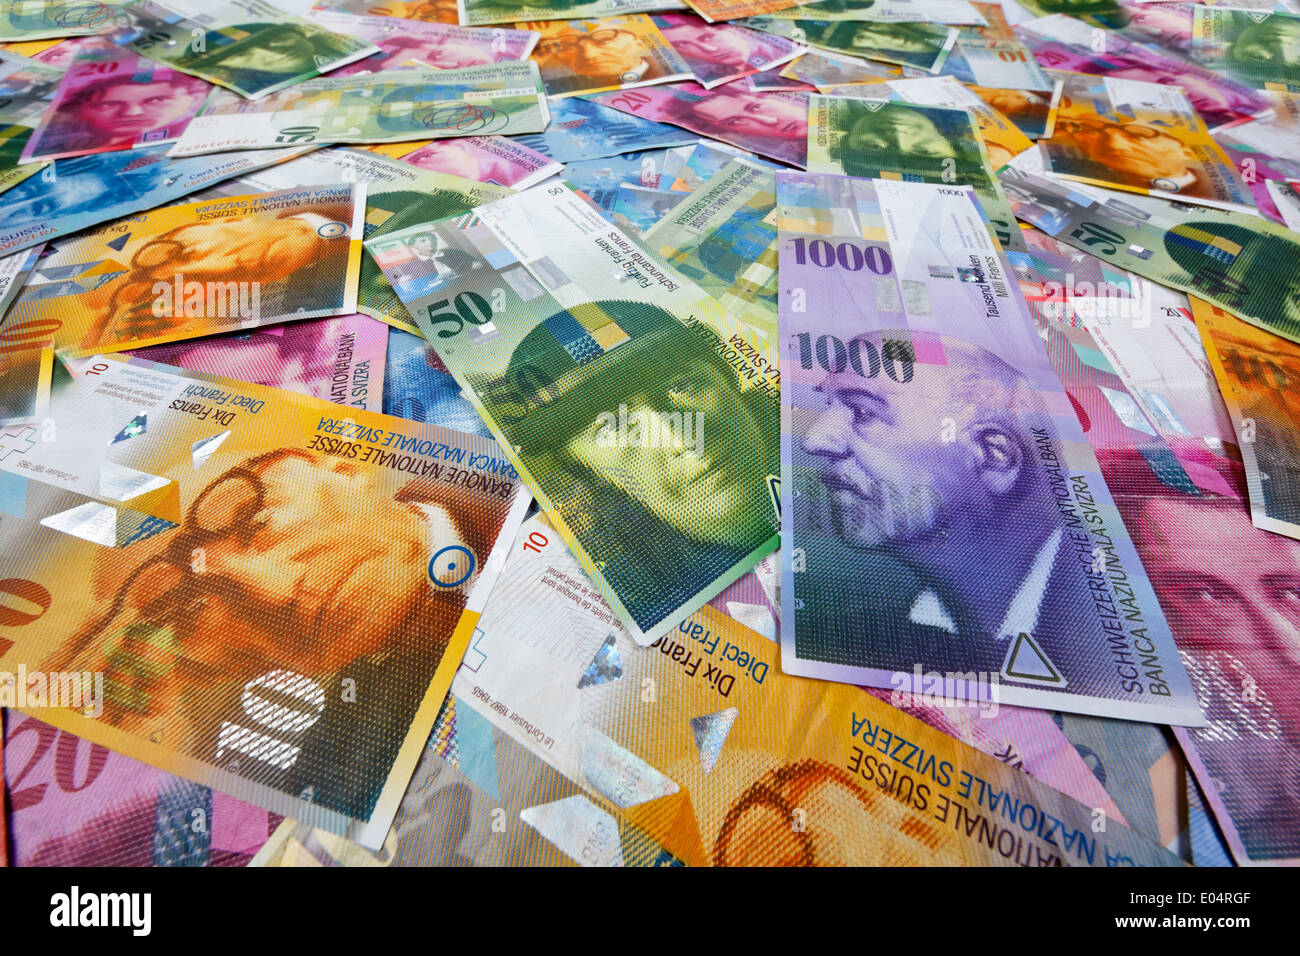 swiss francs money and currency of switzerland schweizer franken stock photo 68947775 alamy. Black Bedroom Furniture Sets. Home Design Ideas